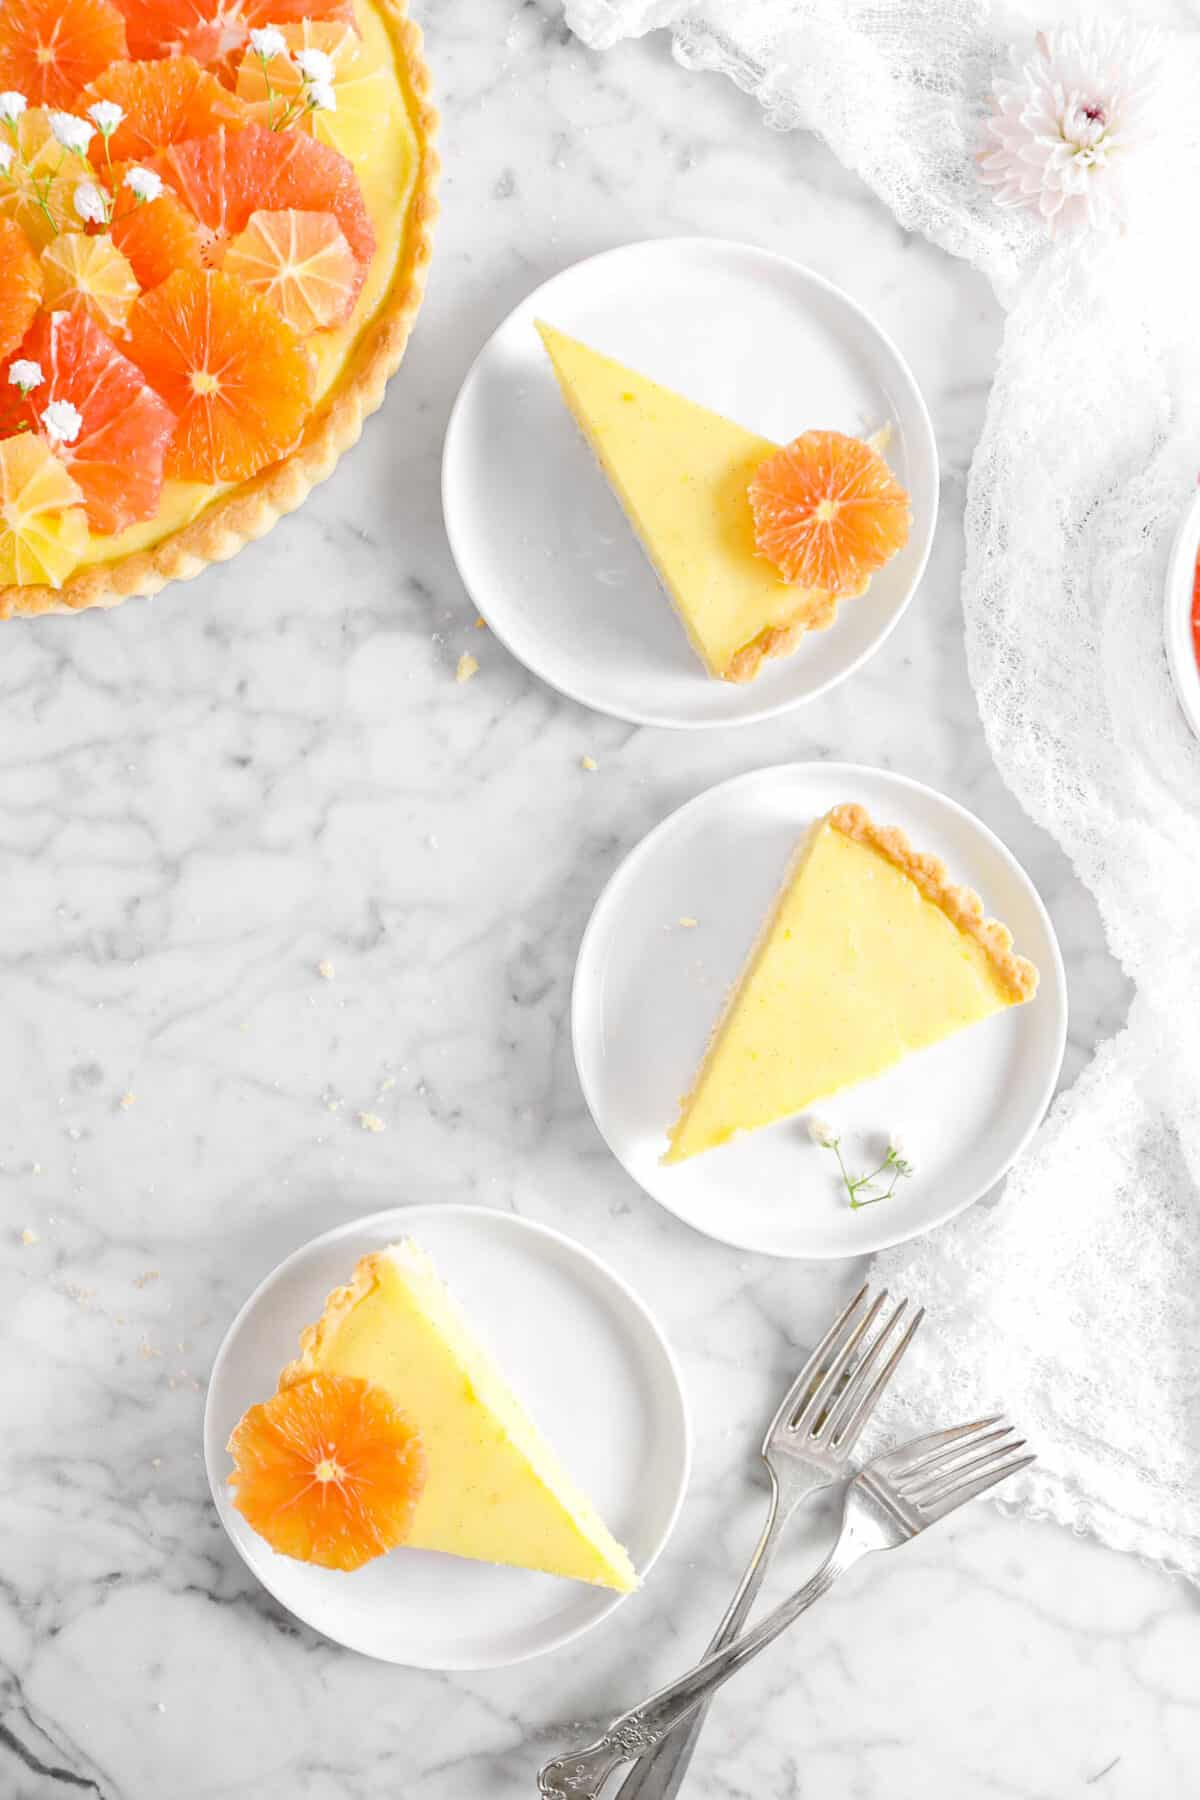 three slices of citrus tart on white plates with two forks and napkin